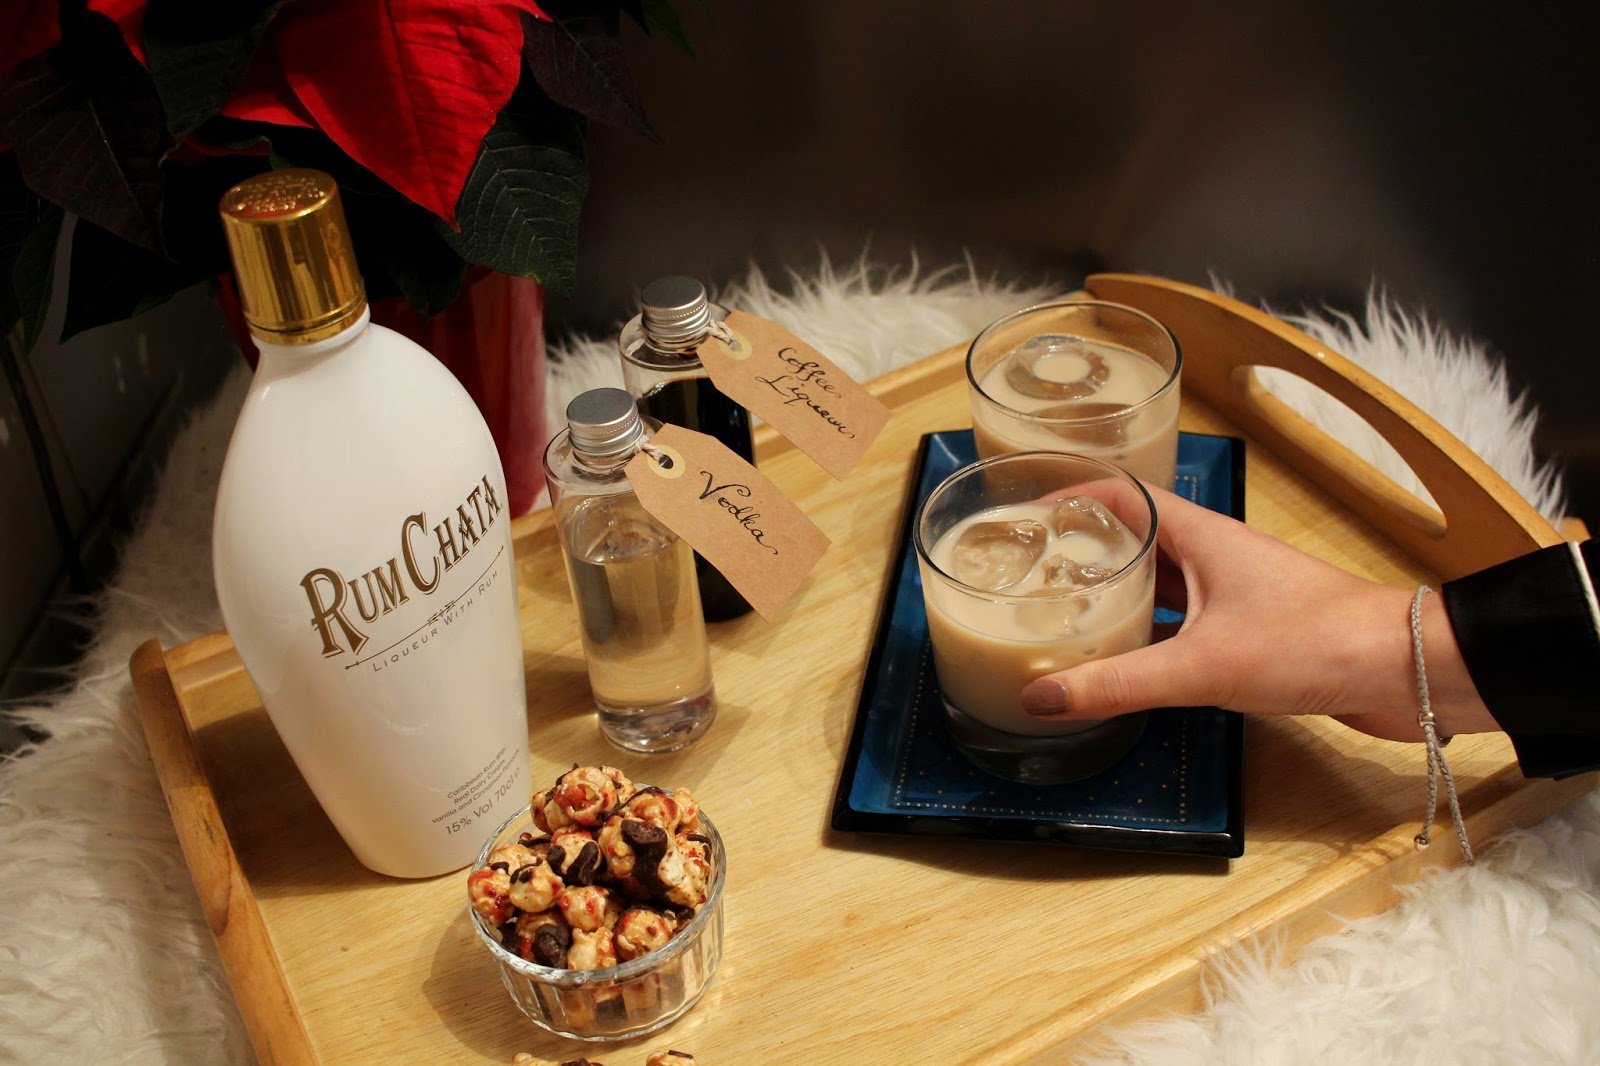 RumChata recipe peexo lifestyle